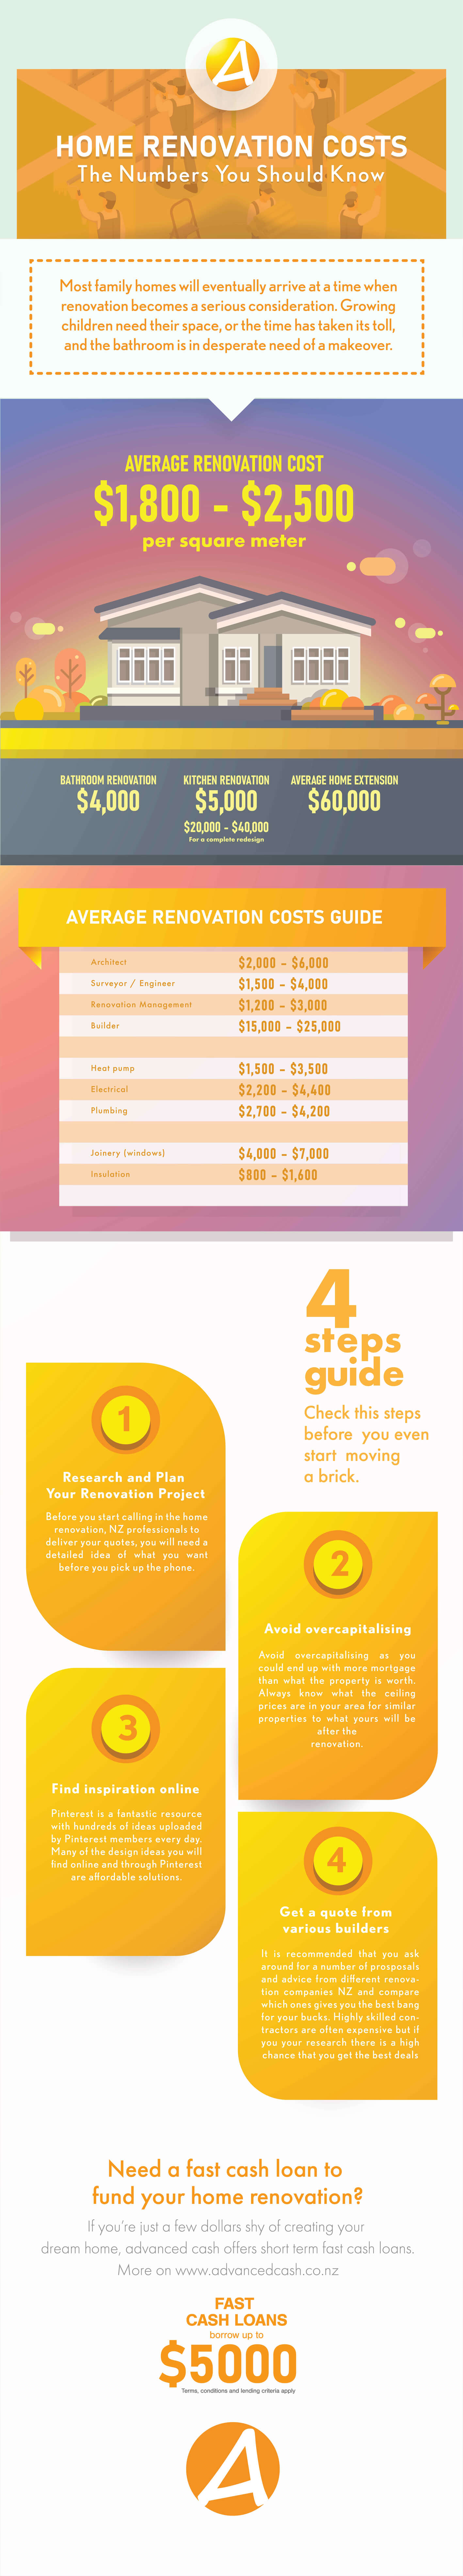 home-renovation-cost-infographic-plaza